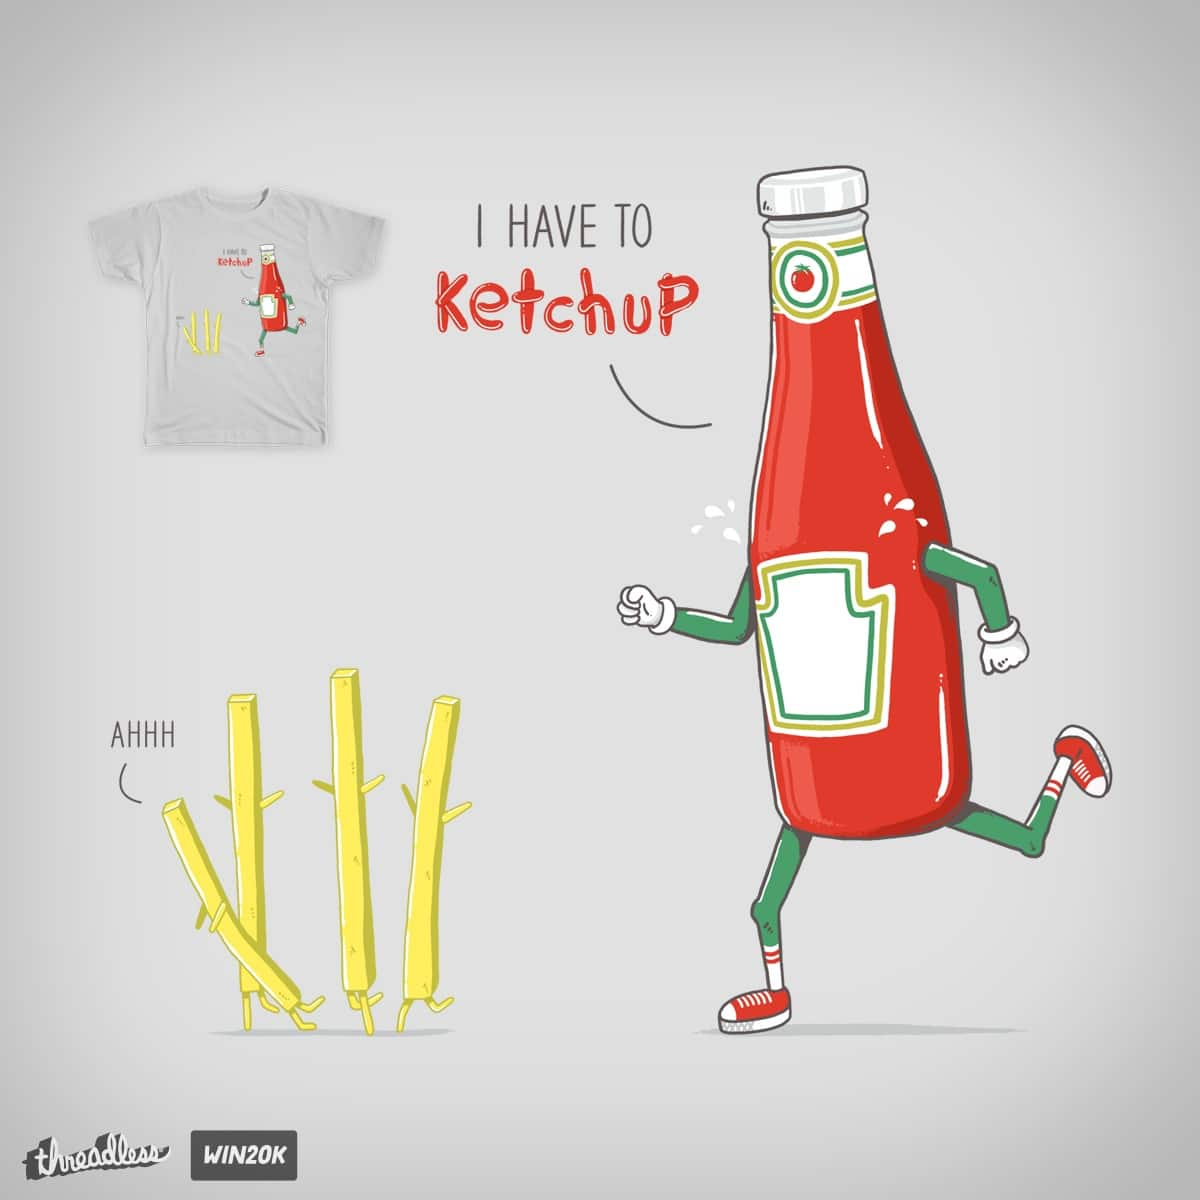 I HAVE TO KETCHUP by yortsiraulo on Threadless